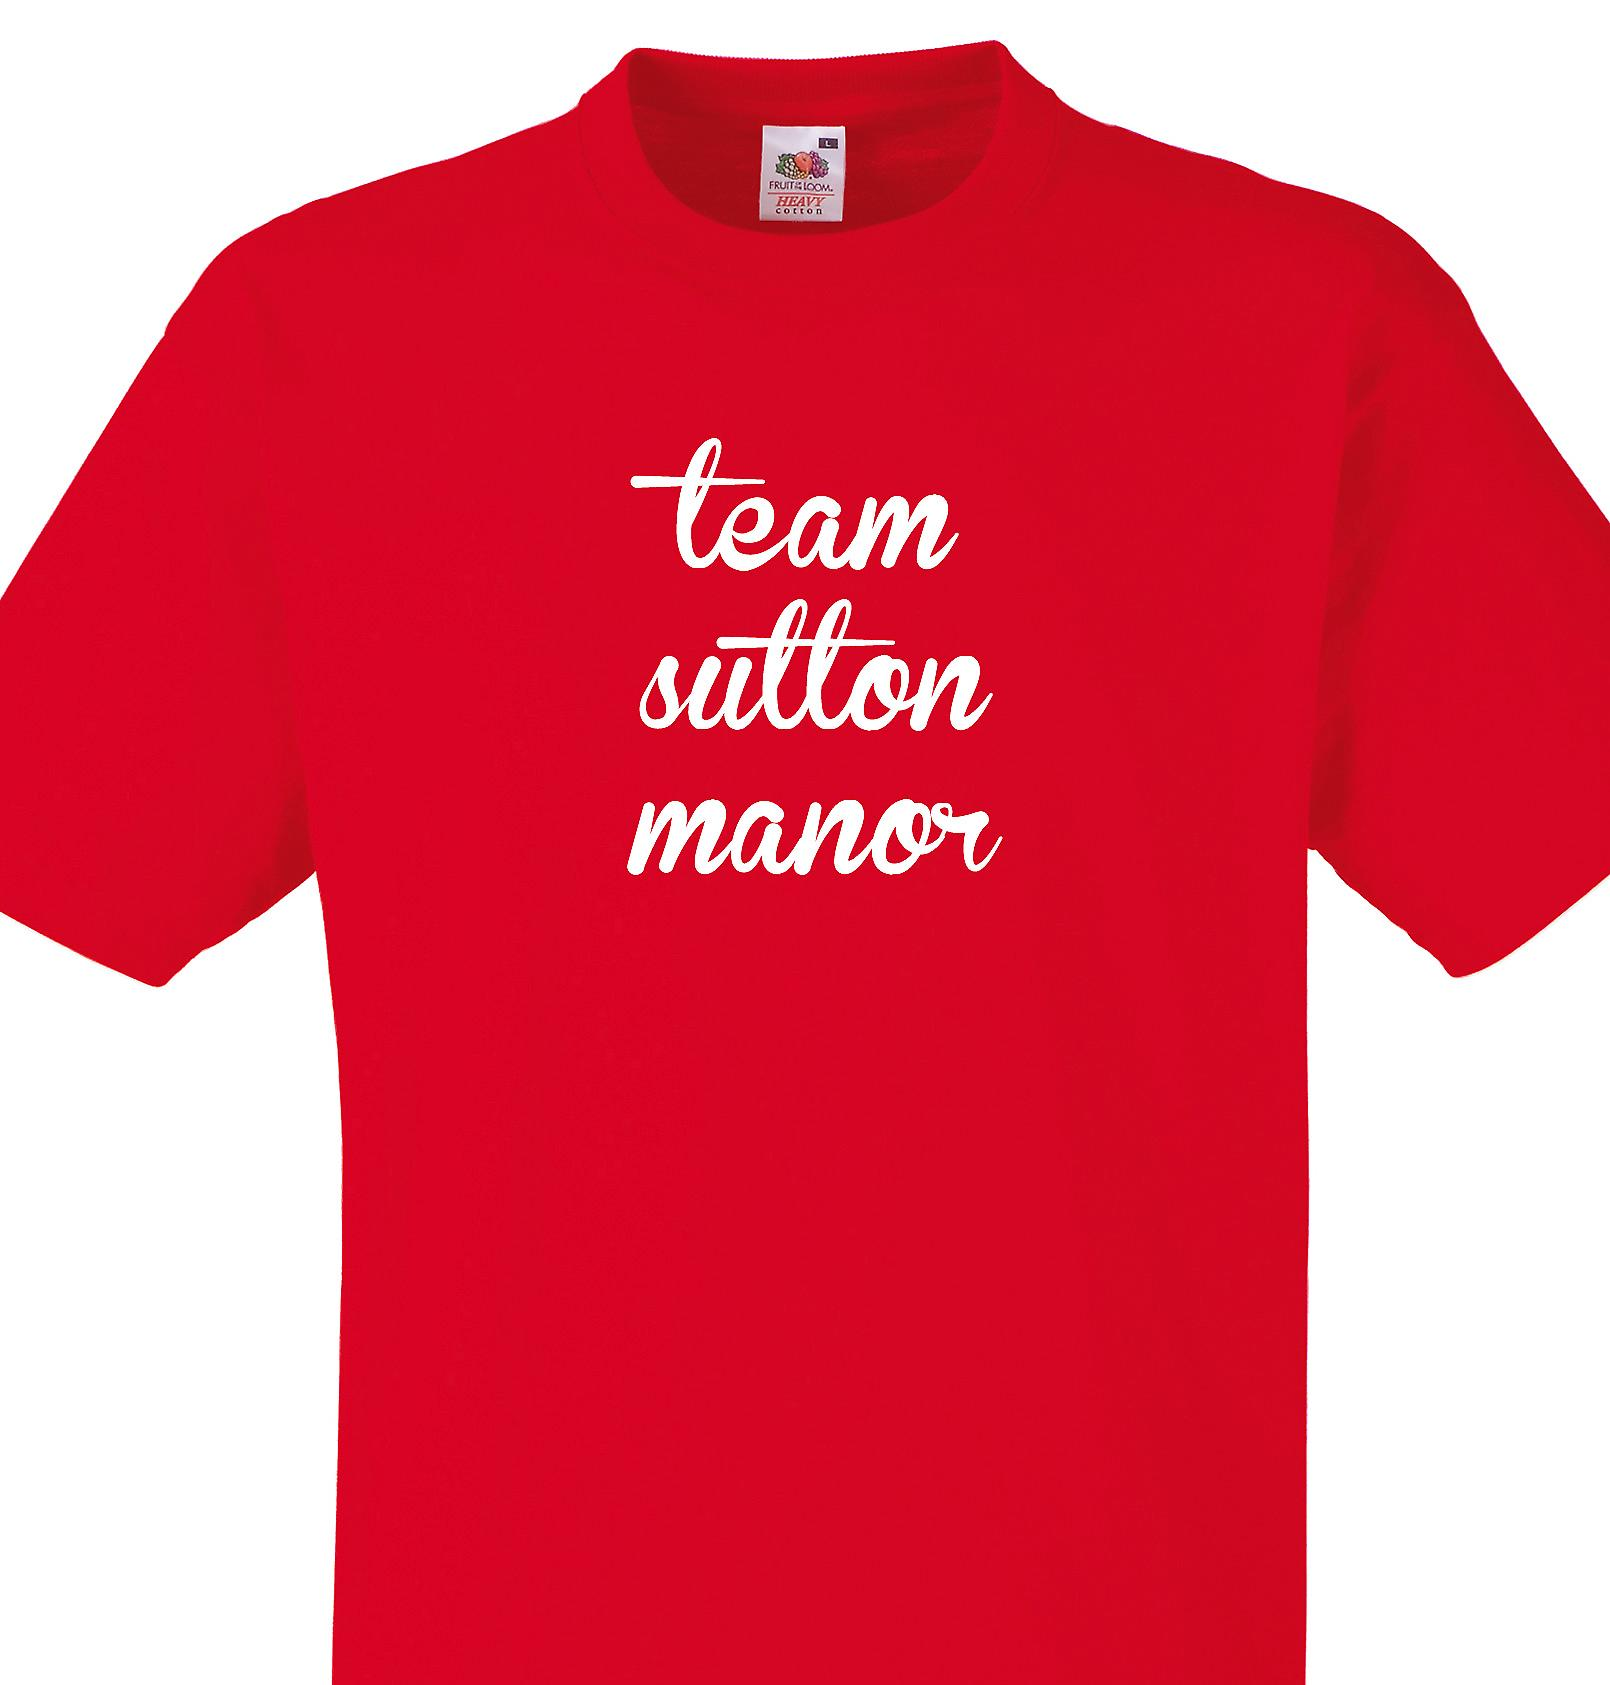 Team Sutton manor Red T shirt